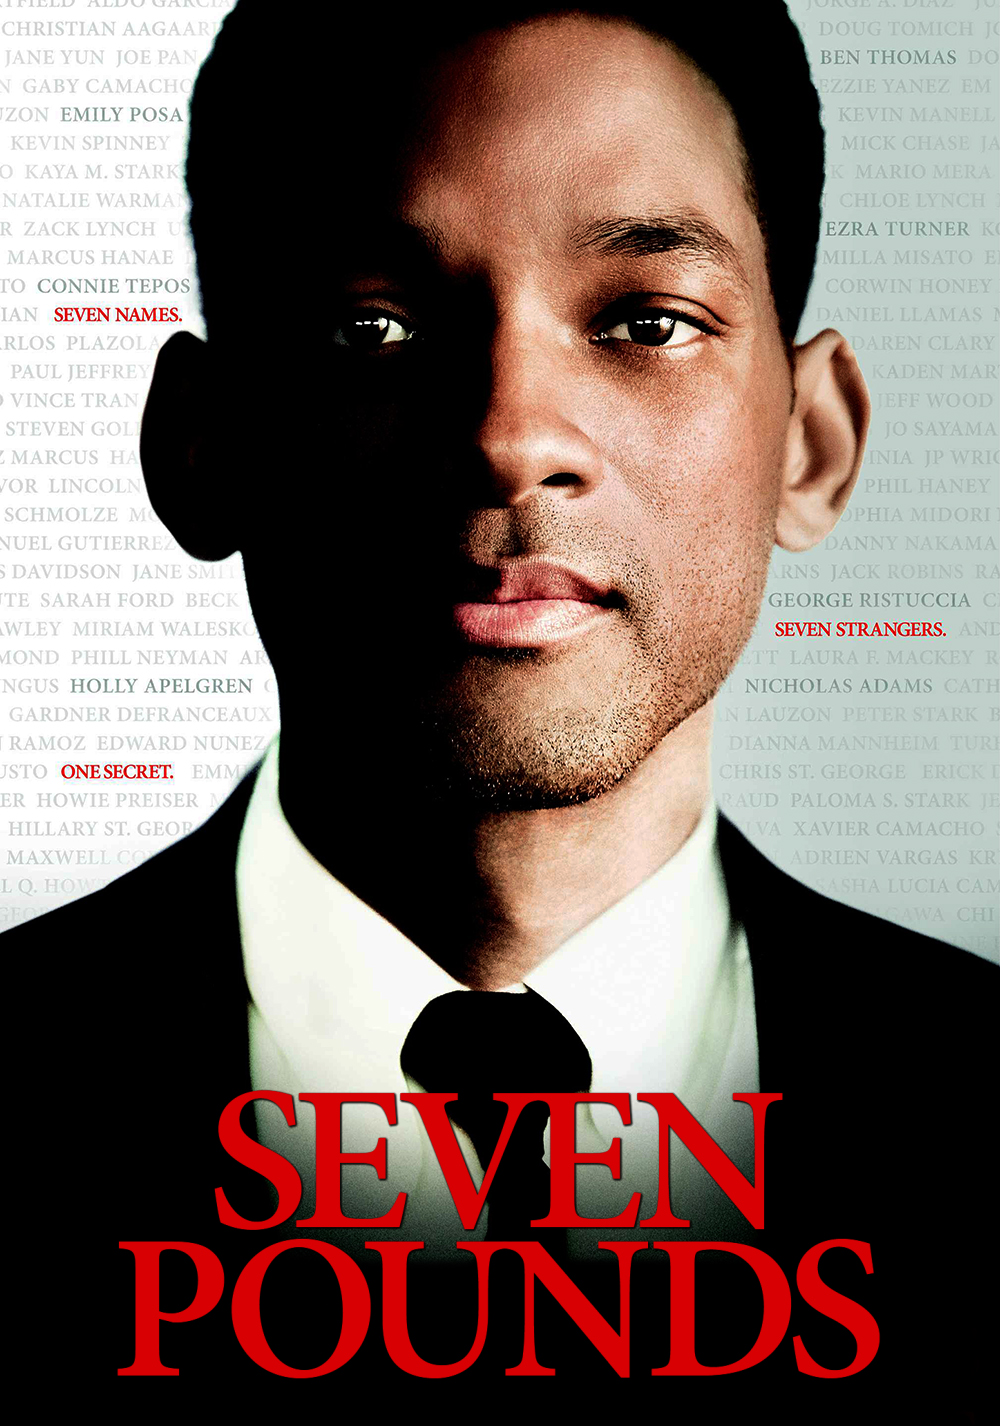 SEVEN POUNDS (2008) TAMIL DUBBED HD